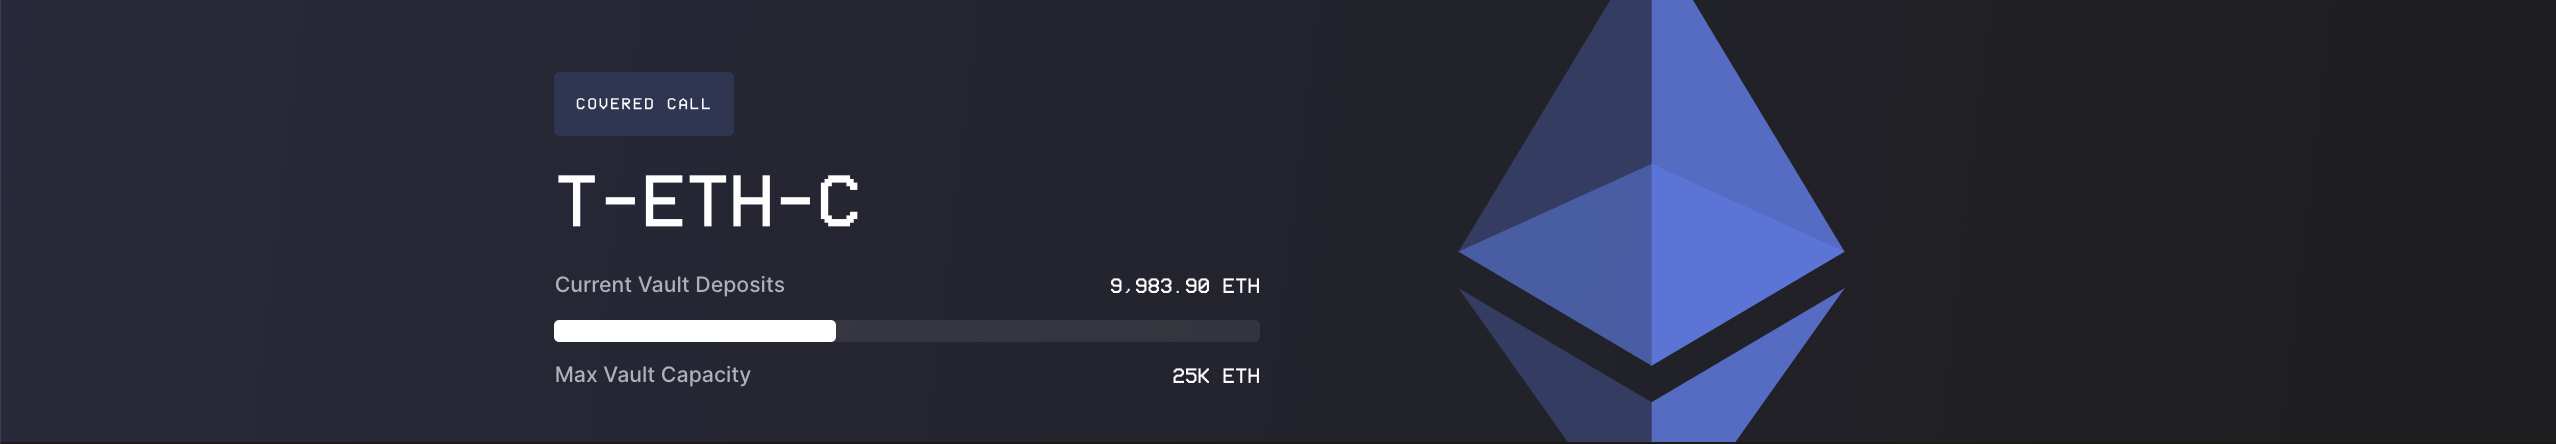 Eth covered call.png